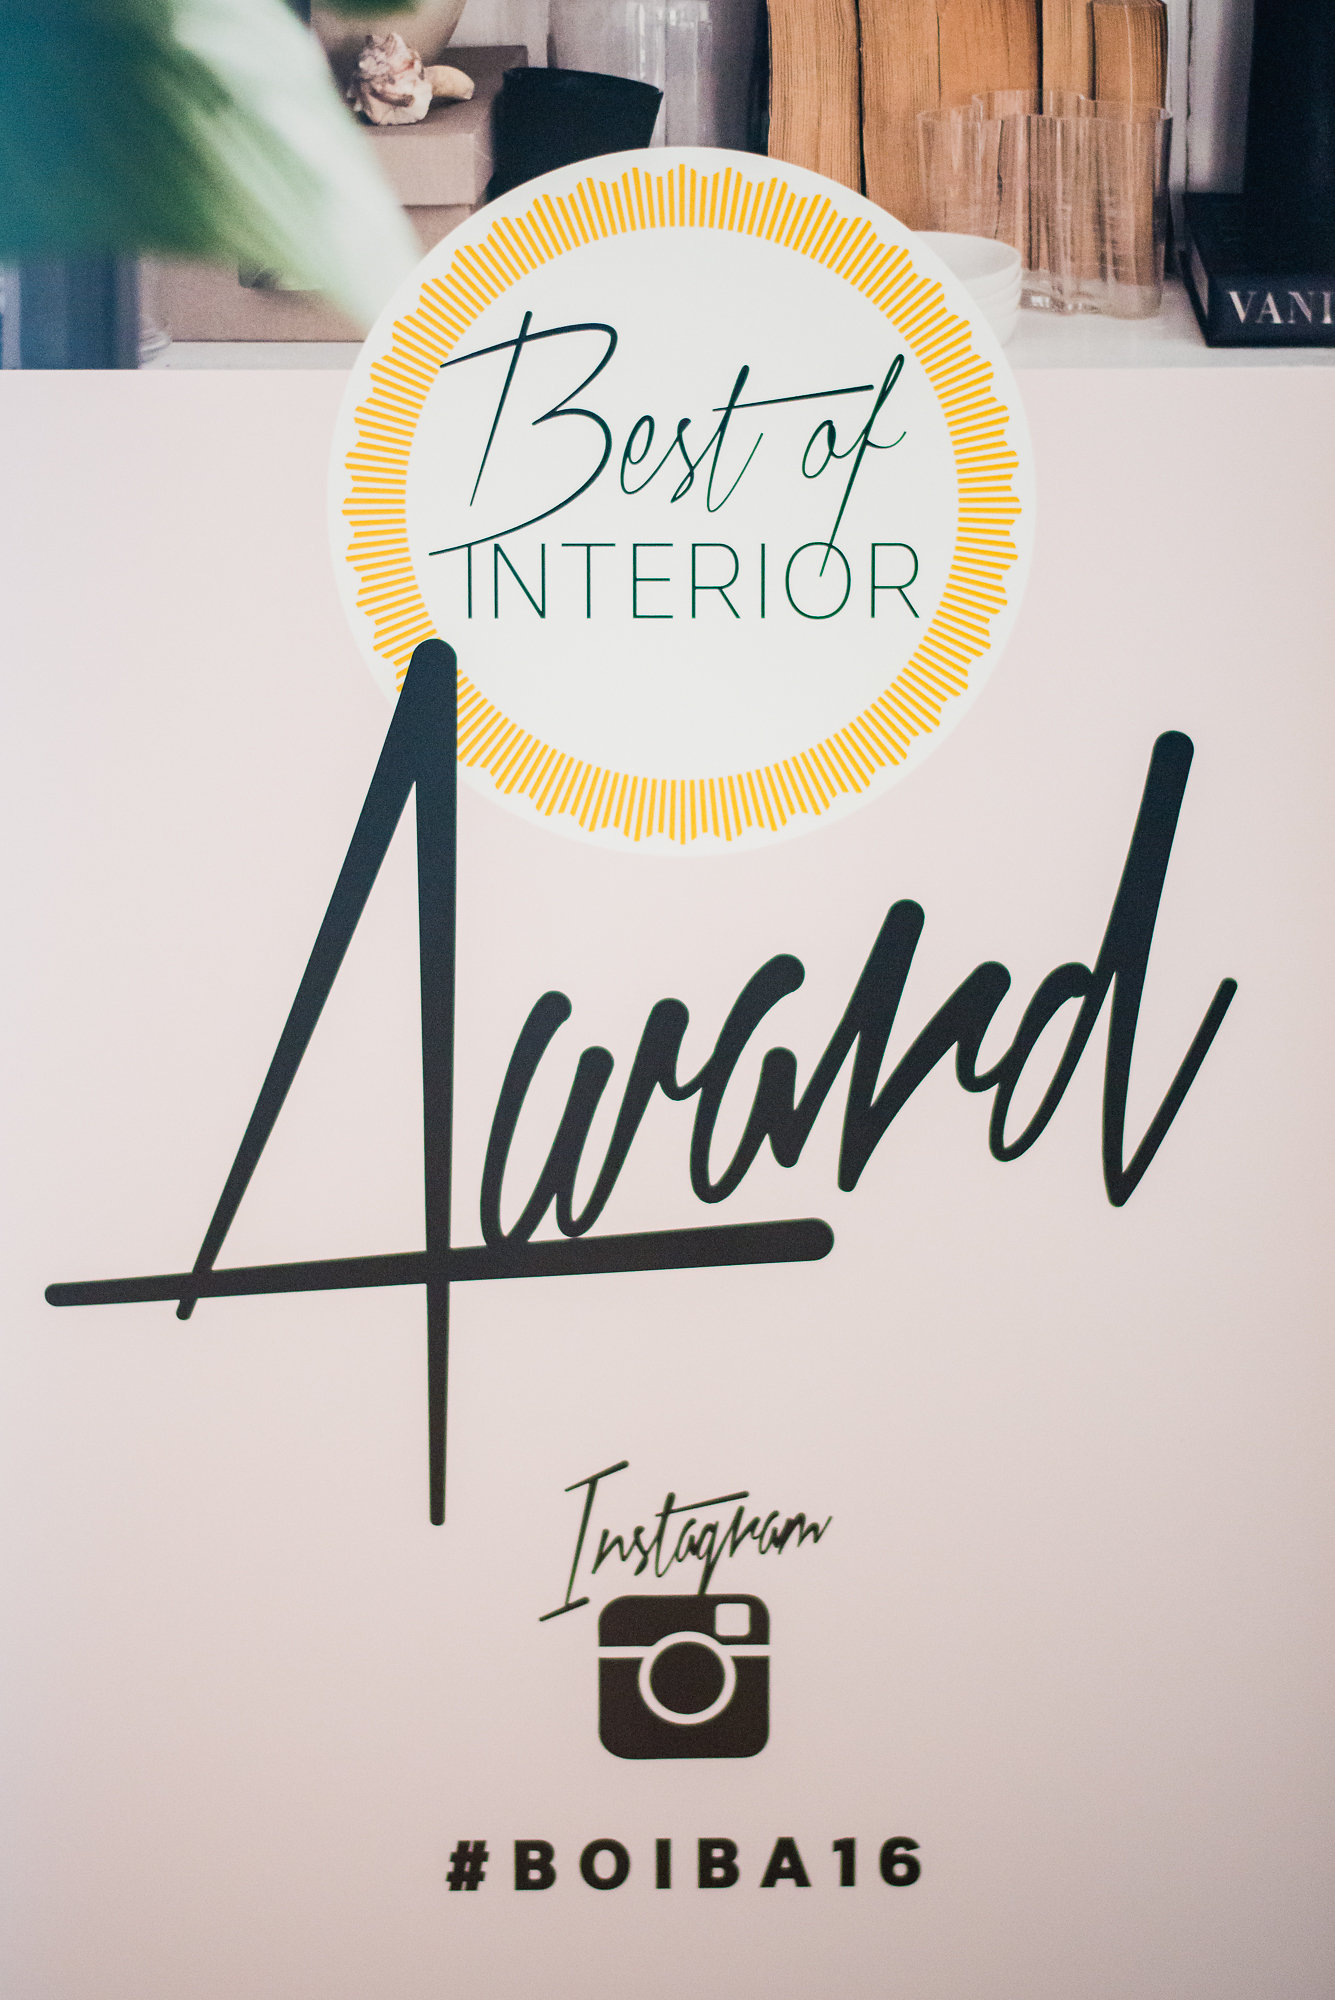 Best Of Interior Blogs Award 2016 Avenue Lifestyle Avenue Lifestyle